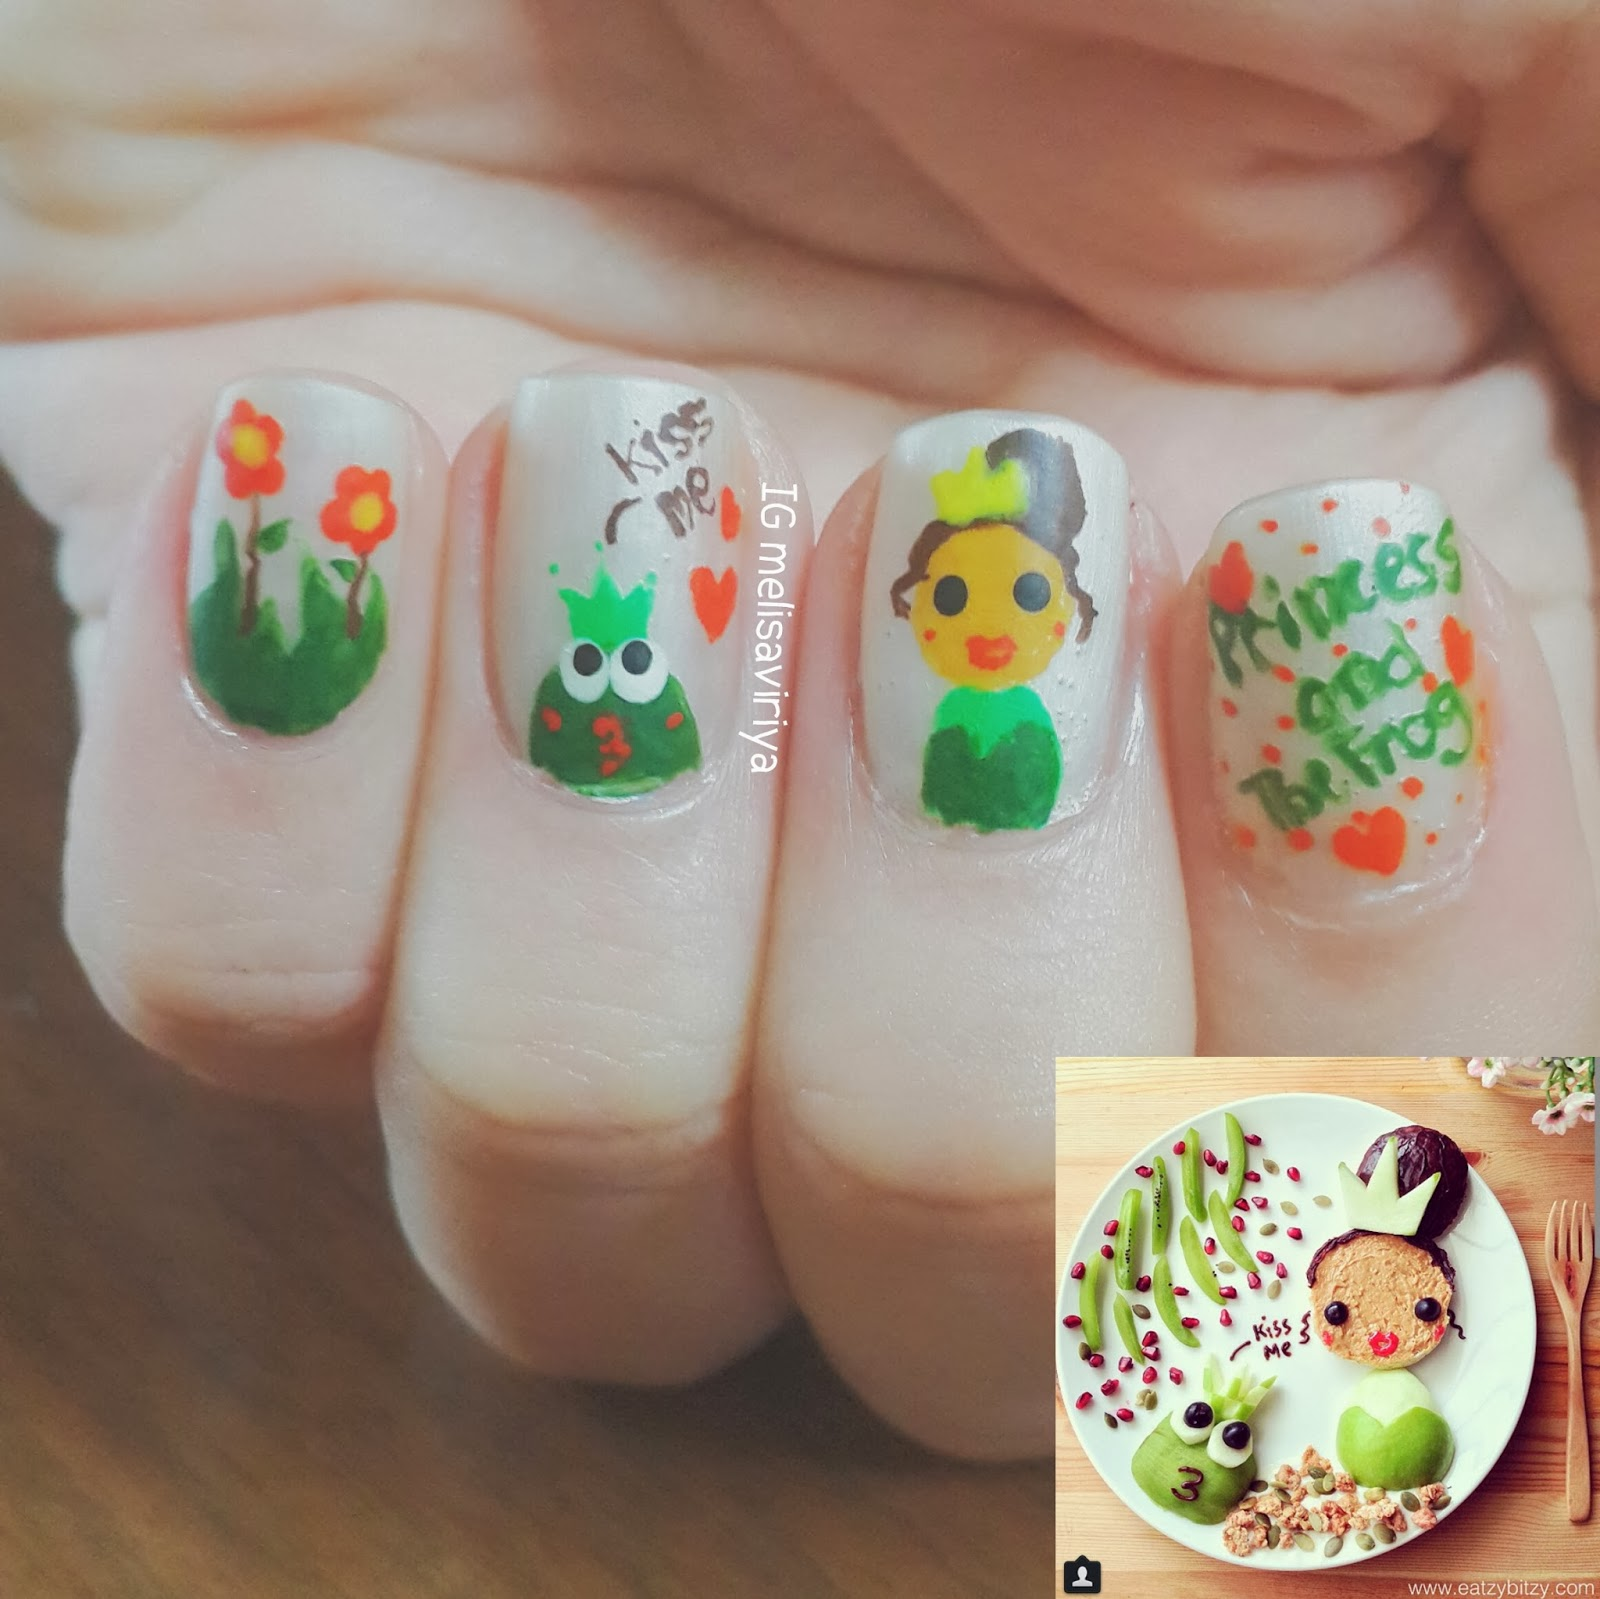 nya lee pedicure princess and the frog nail art